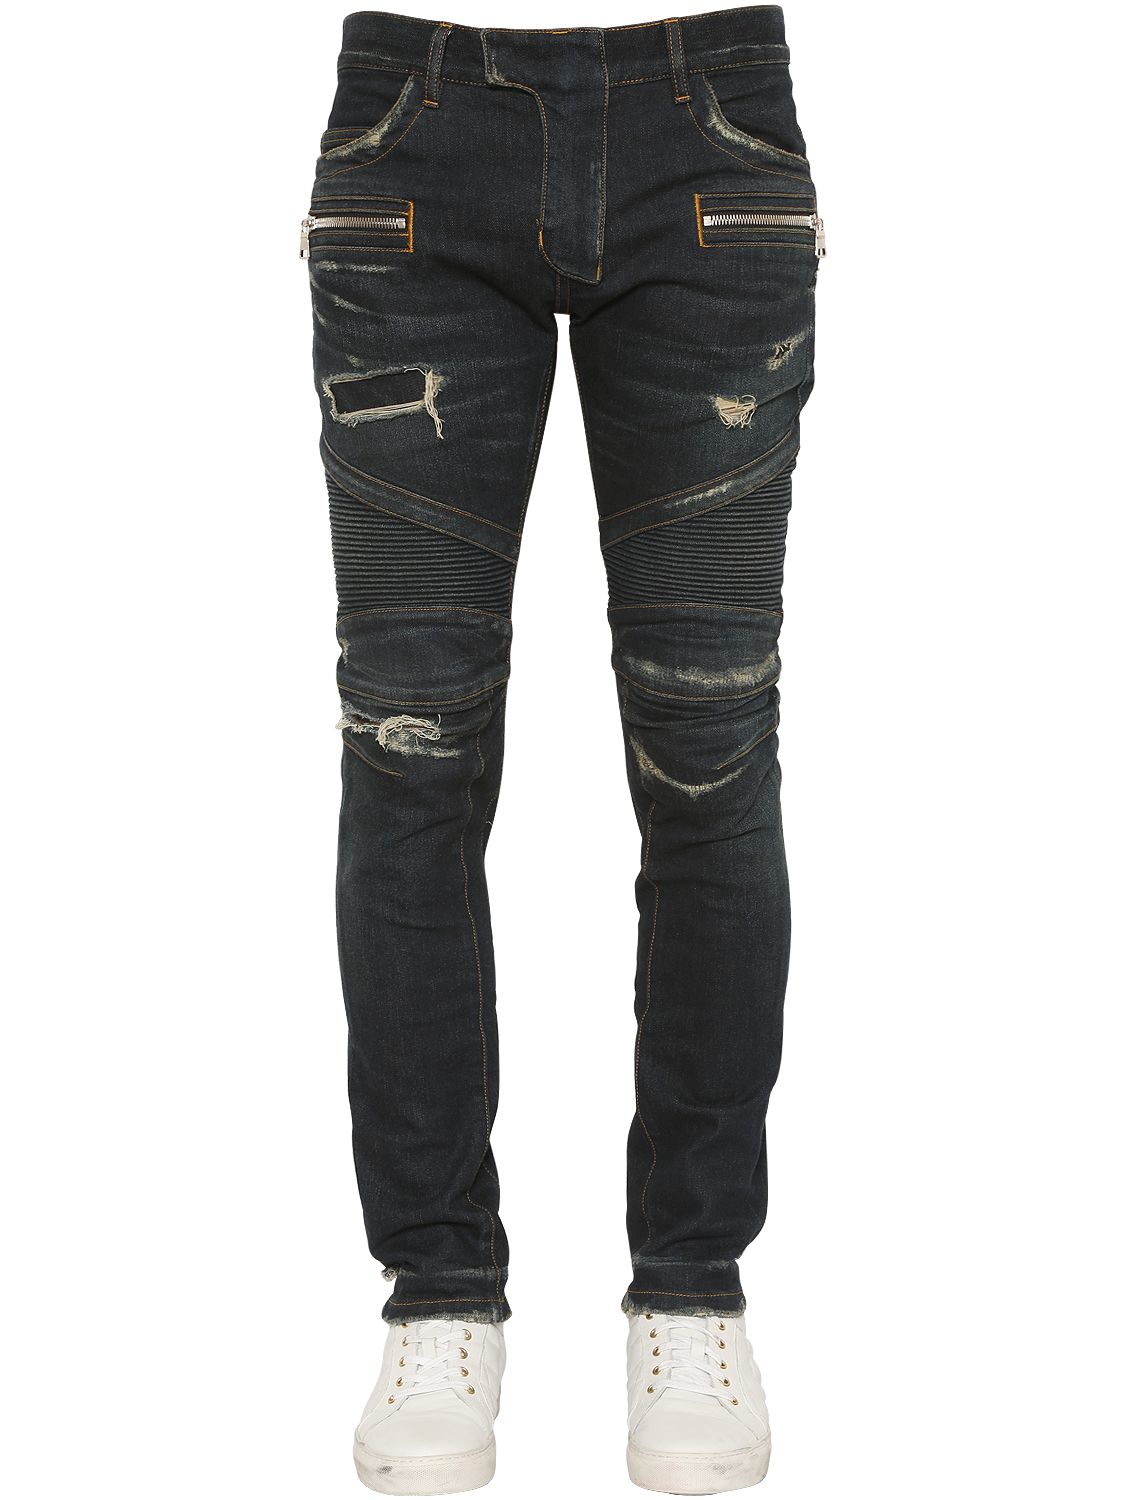 Free shipping BOTH ways on pierre balmain faded biker jeans denim blue 2, from our vast selection of styles. Fast delivery, and 24/7/ real-person service with a smile. Click or call